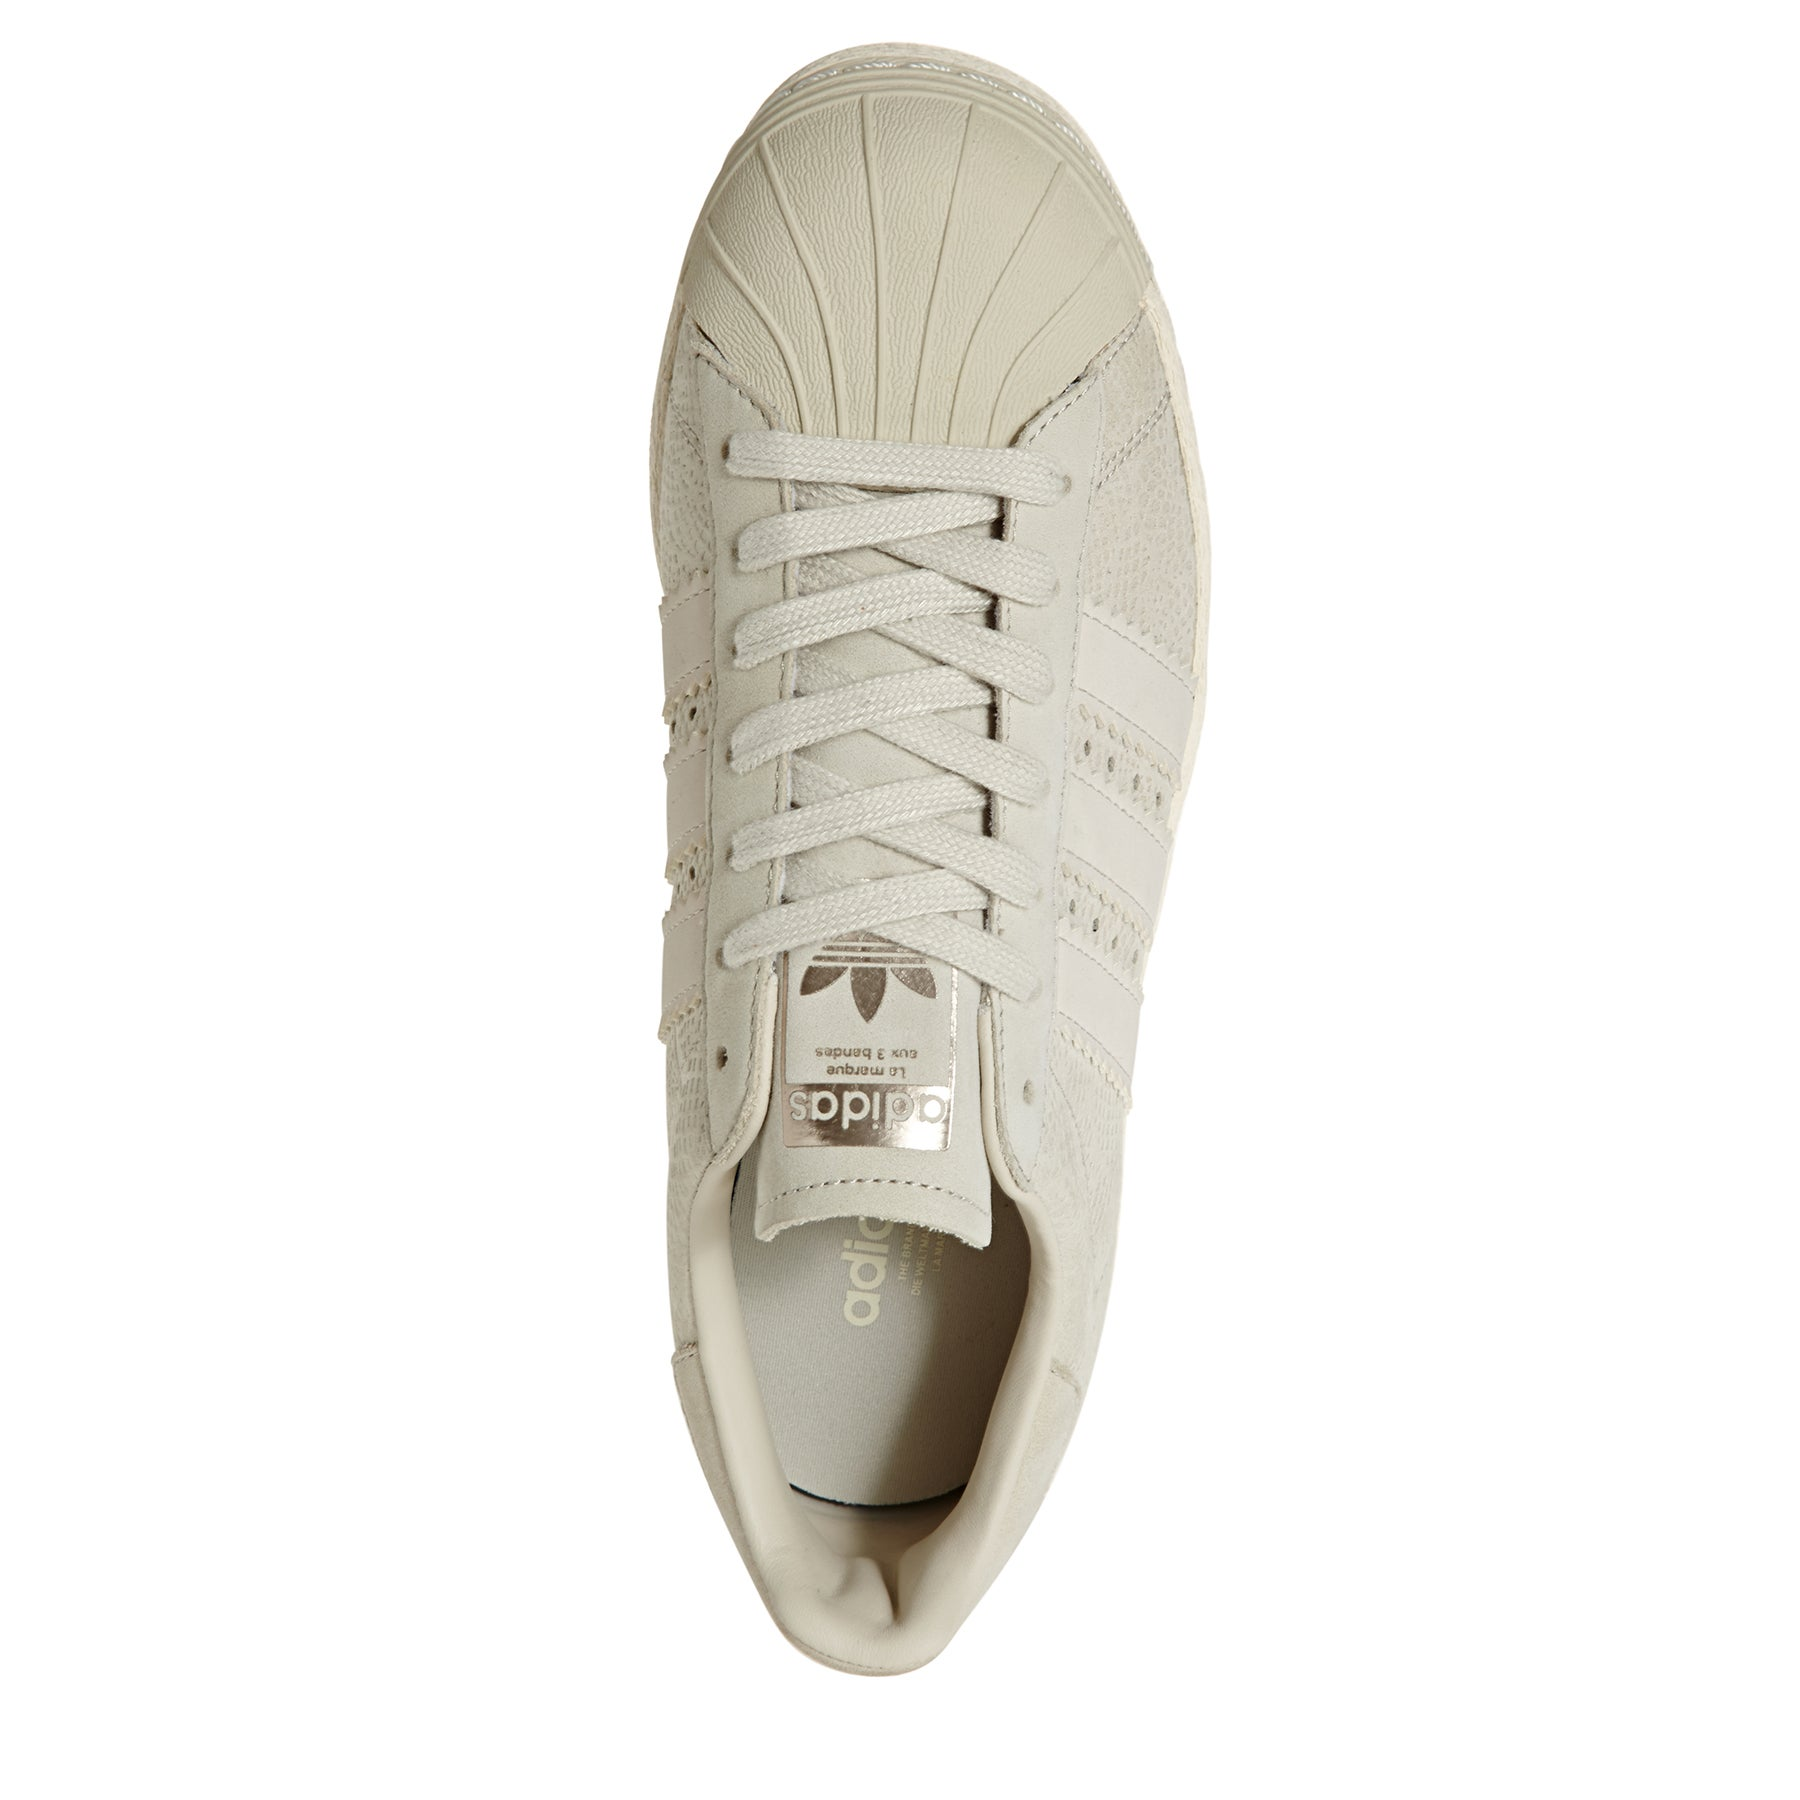 premium selection c0b47 dccfe Adidas Originals Superstar 80s Shoes